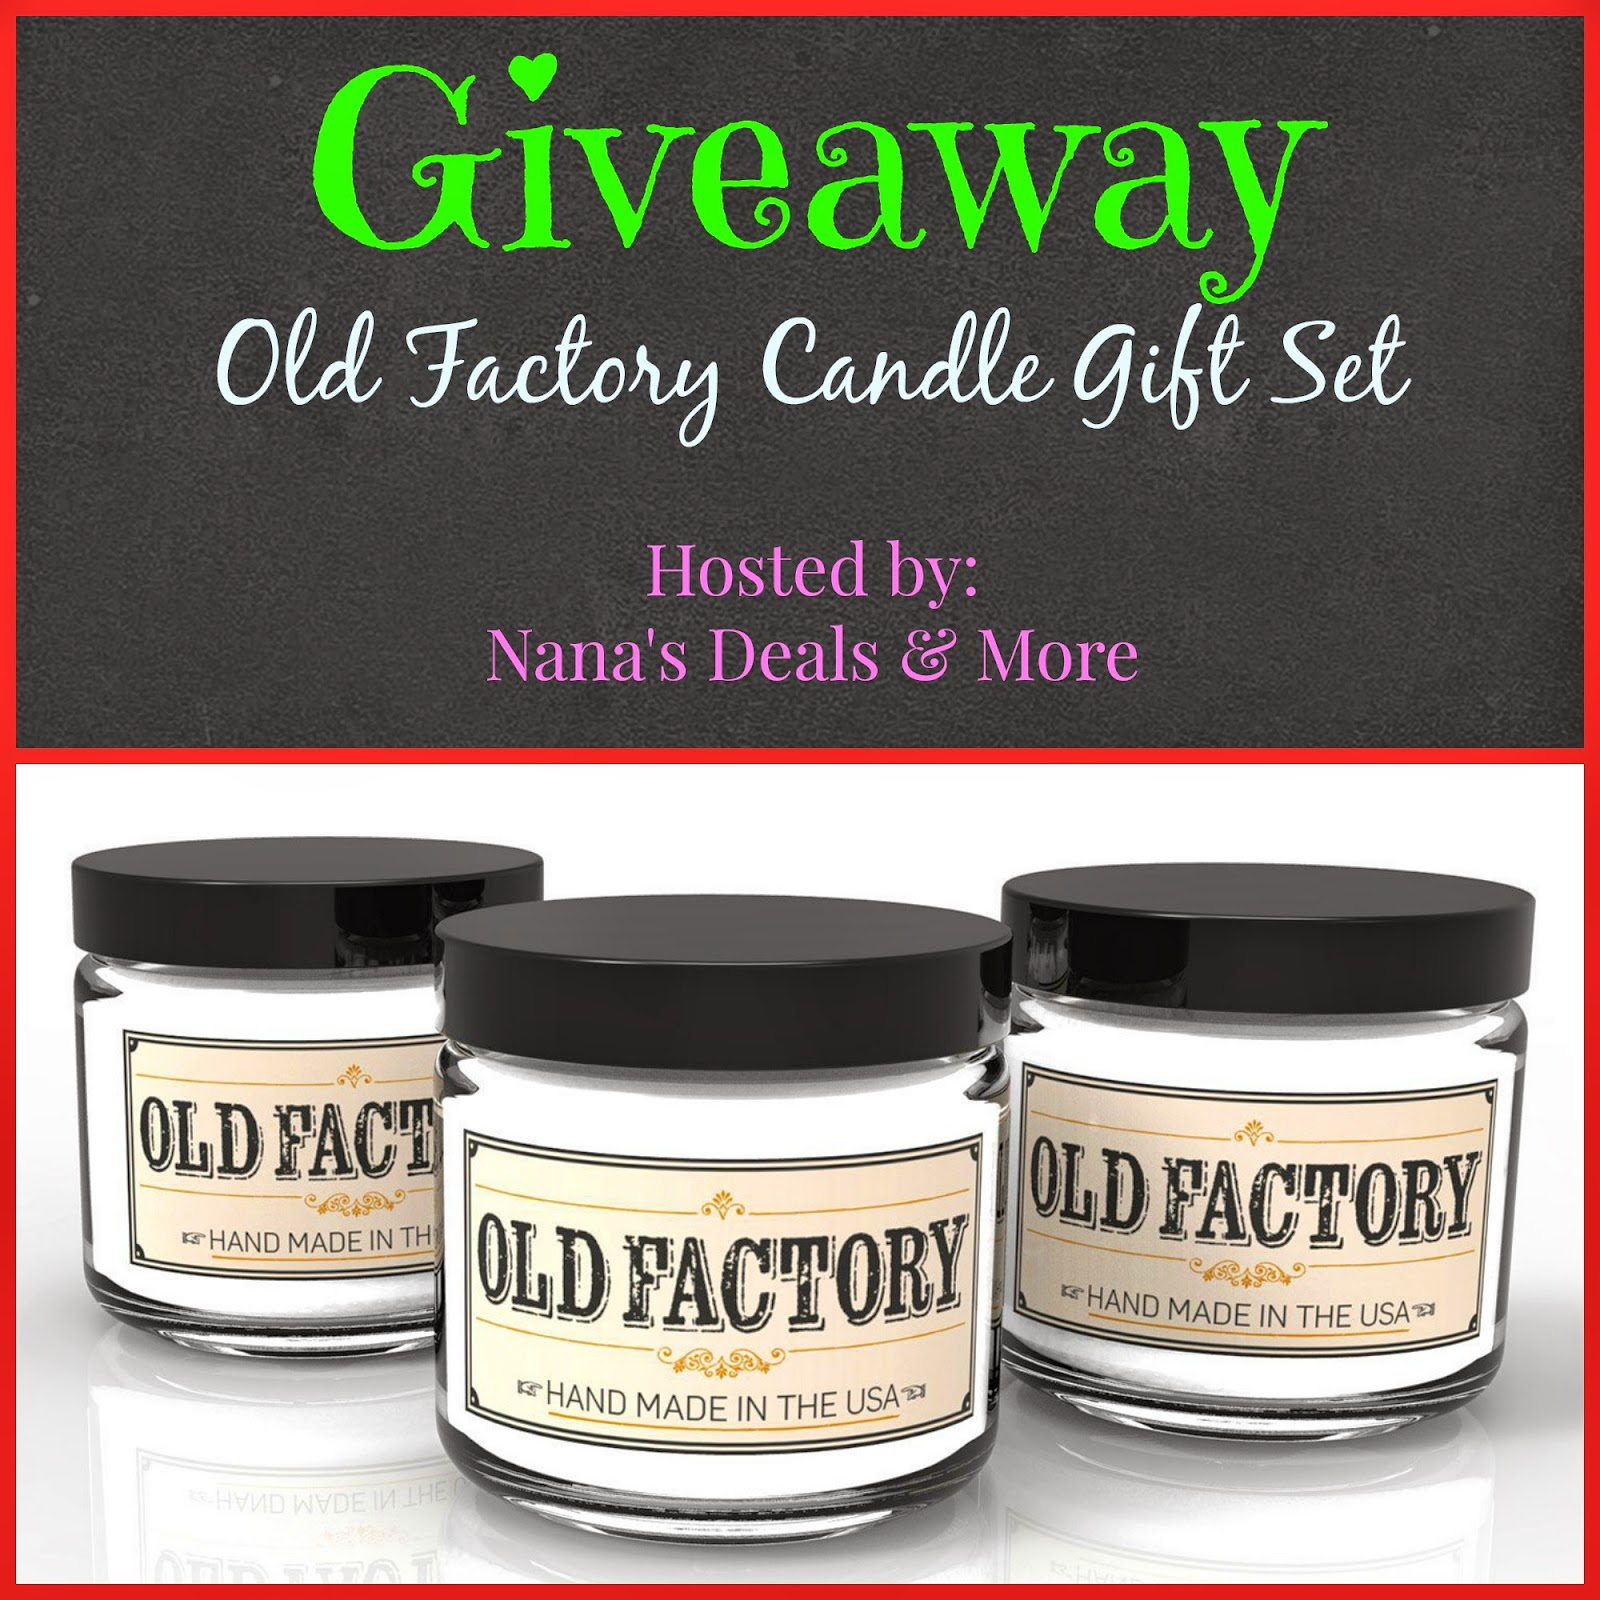 Enter to win a 3 pack of Candles